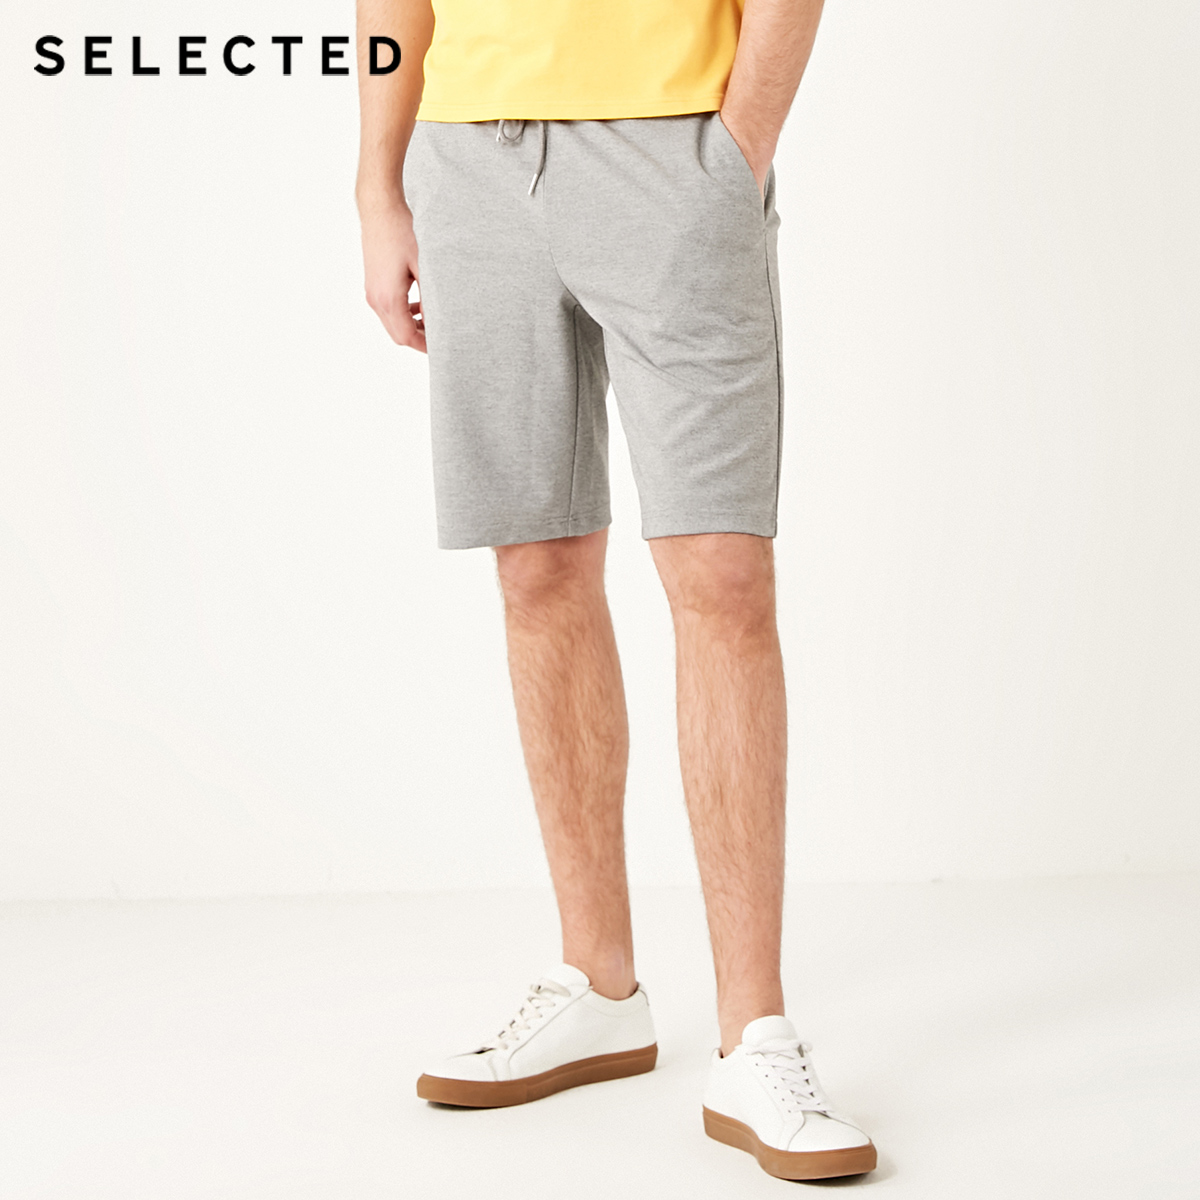 SELECTED Men's Spliced Straight Fit Shorts S 4192SH501